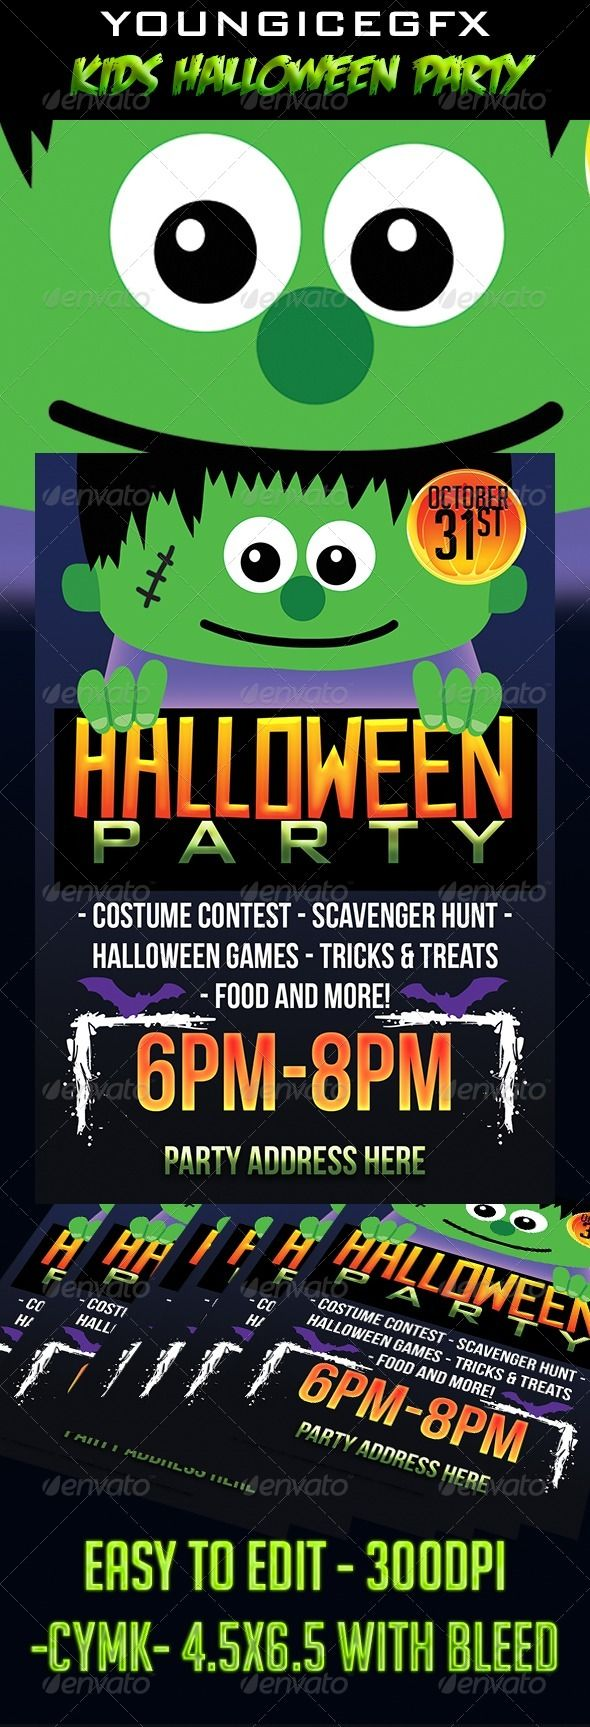 Best 25+ Halloween party flyer ideas on Pinterest | Flyers ...